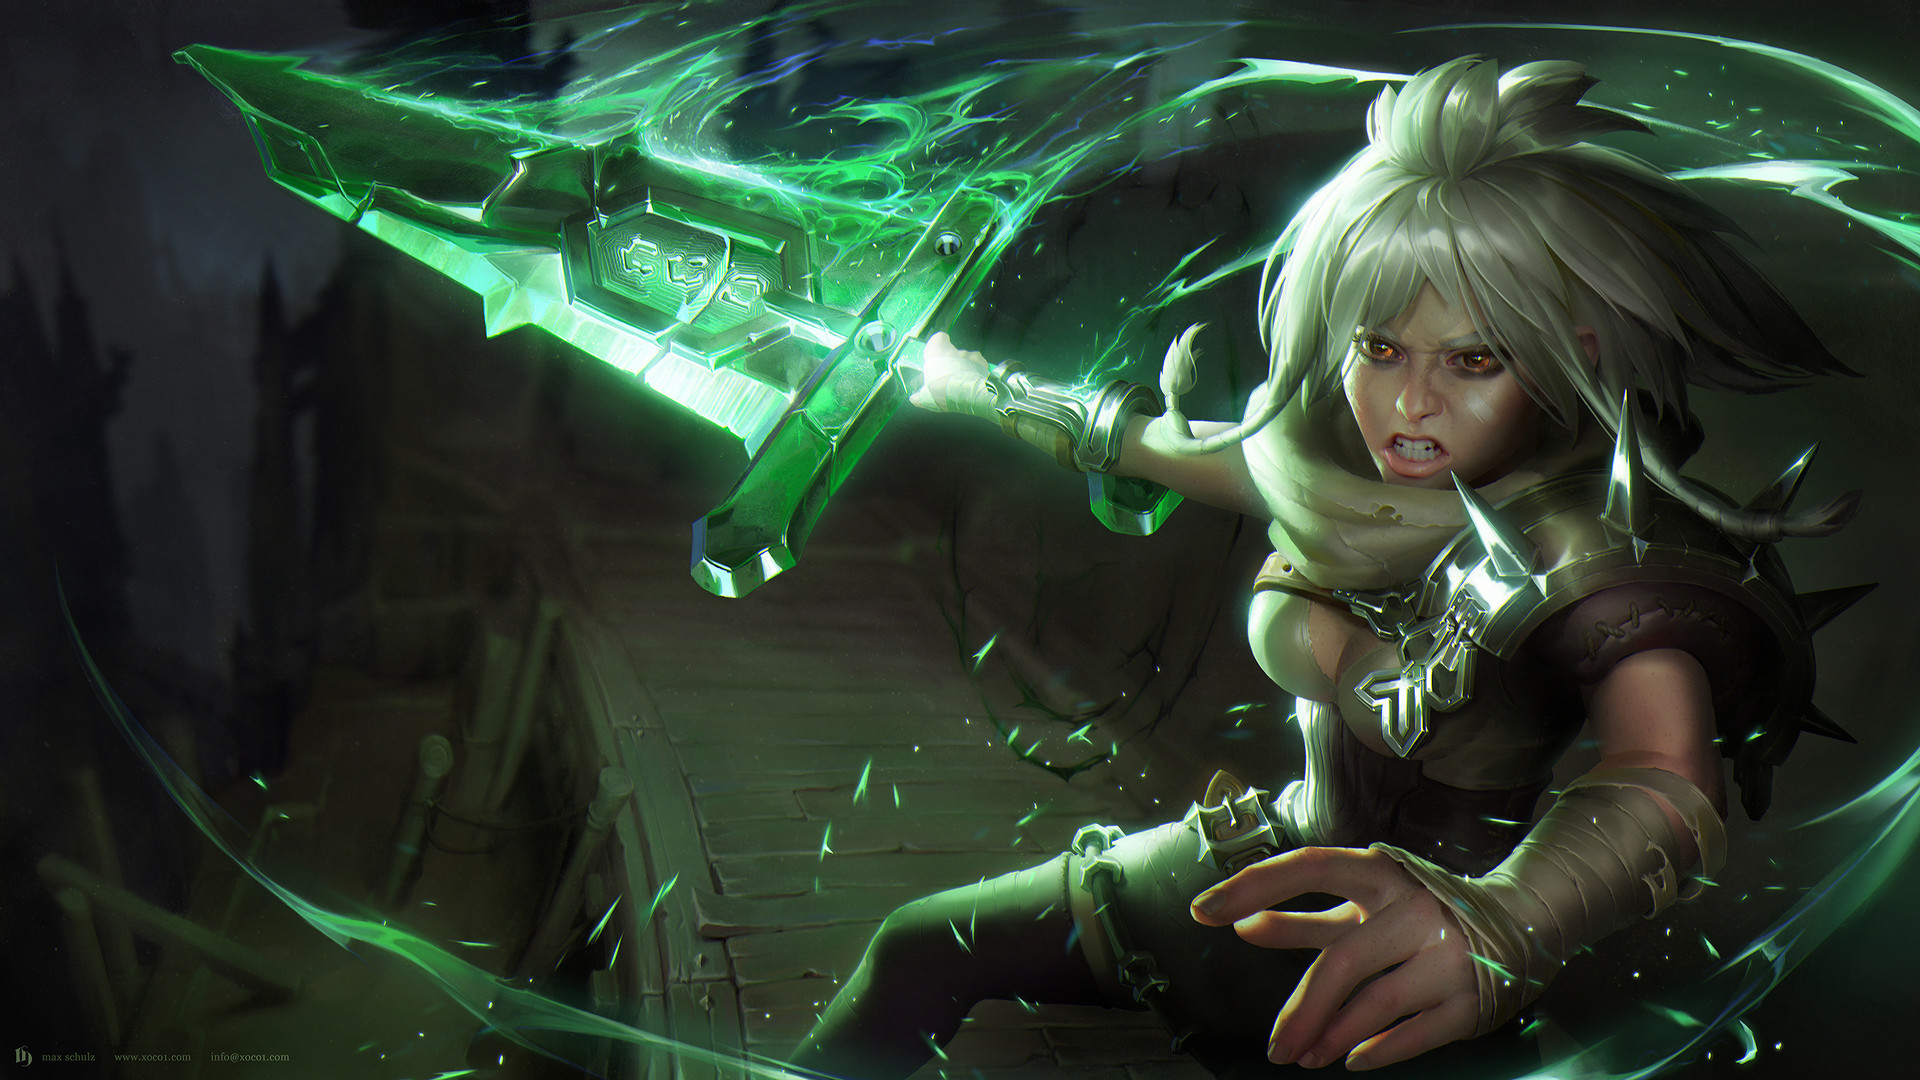 riven league of legends hd, hd games, 4k wallpapers, images